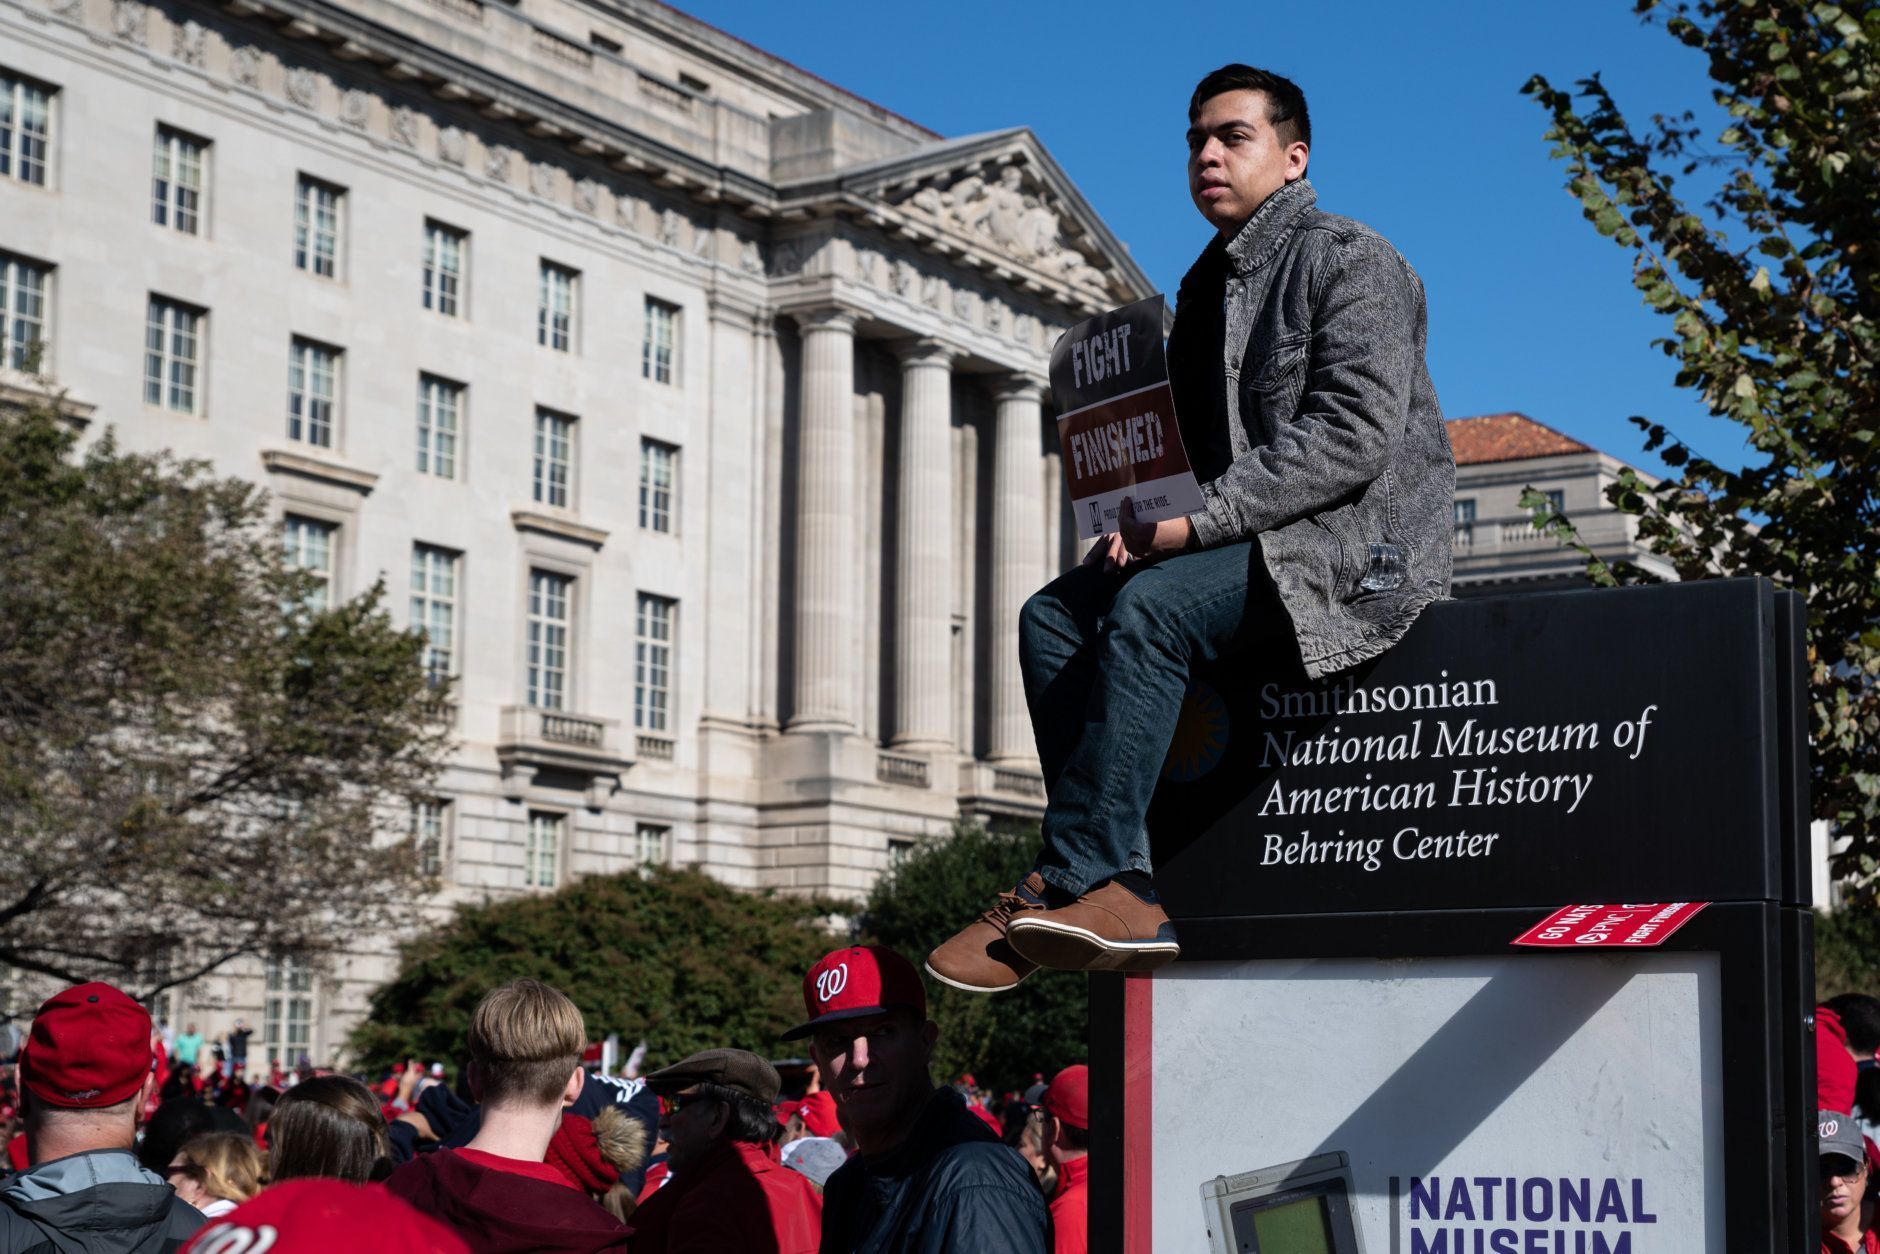 A Nationals fan sits atop a sign for the Smithsonian Museum of American History on Constitution Avenue. Fans mounted signs, ledges, power boxes and, on occassion, climbed street lights for a view above the dense crowd. (WTOP/Alejandro Alvarez)